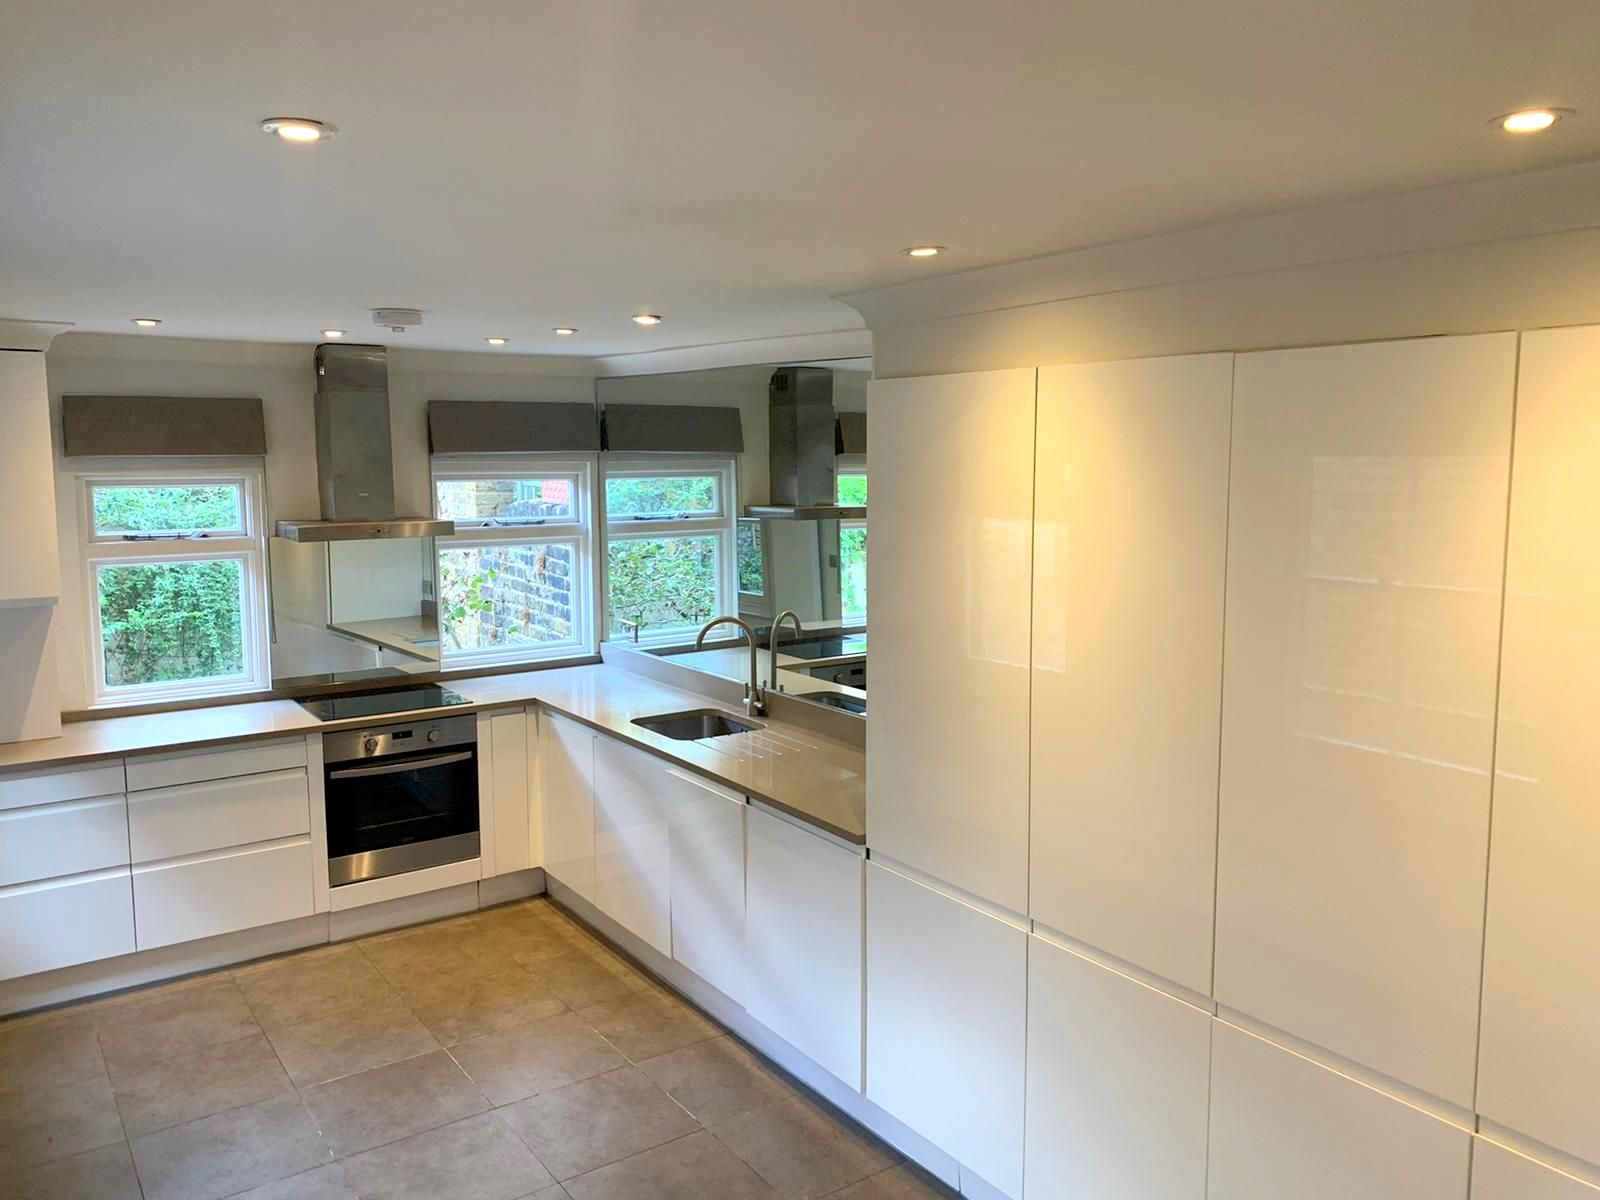 4yr Old B&Q Kitchen with Worktops and Some Appliances